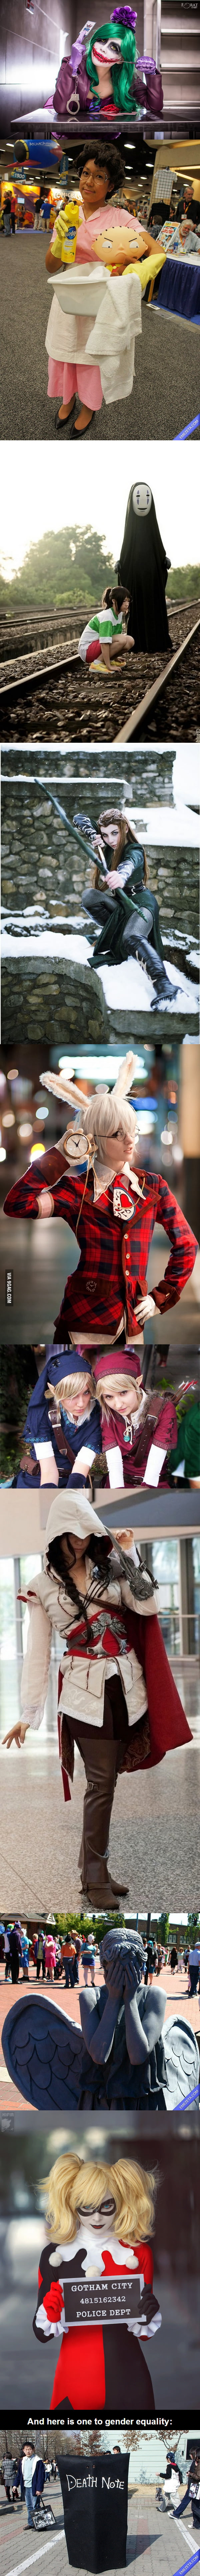 Female cosplay awesomeness (without cleavage as the focal point)